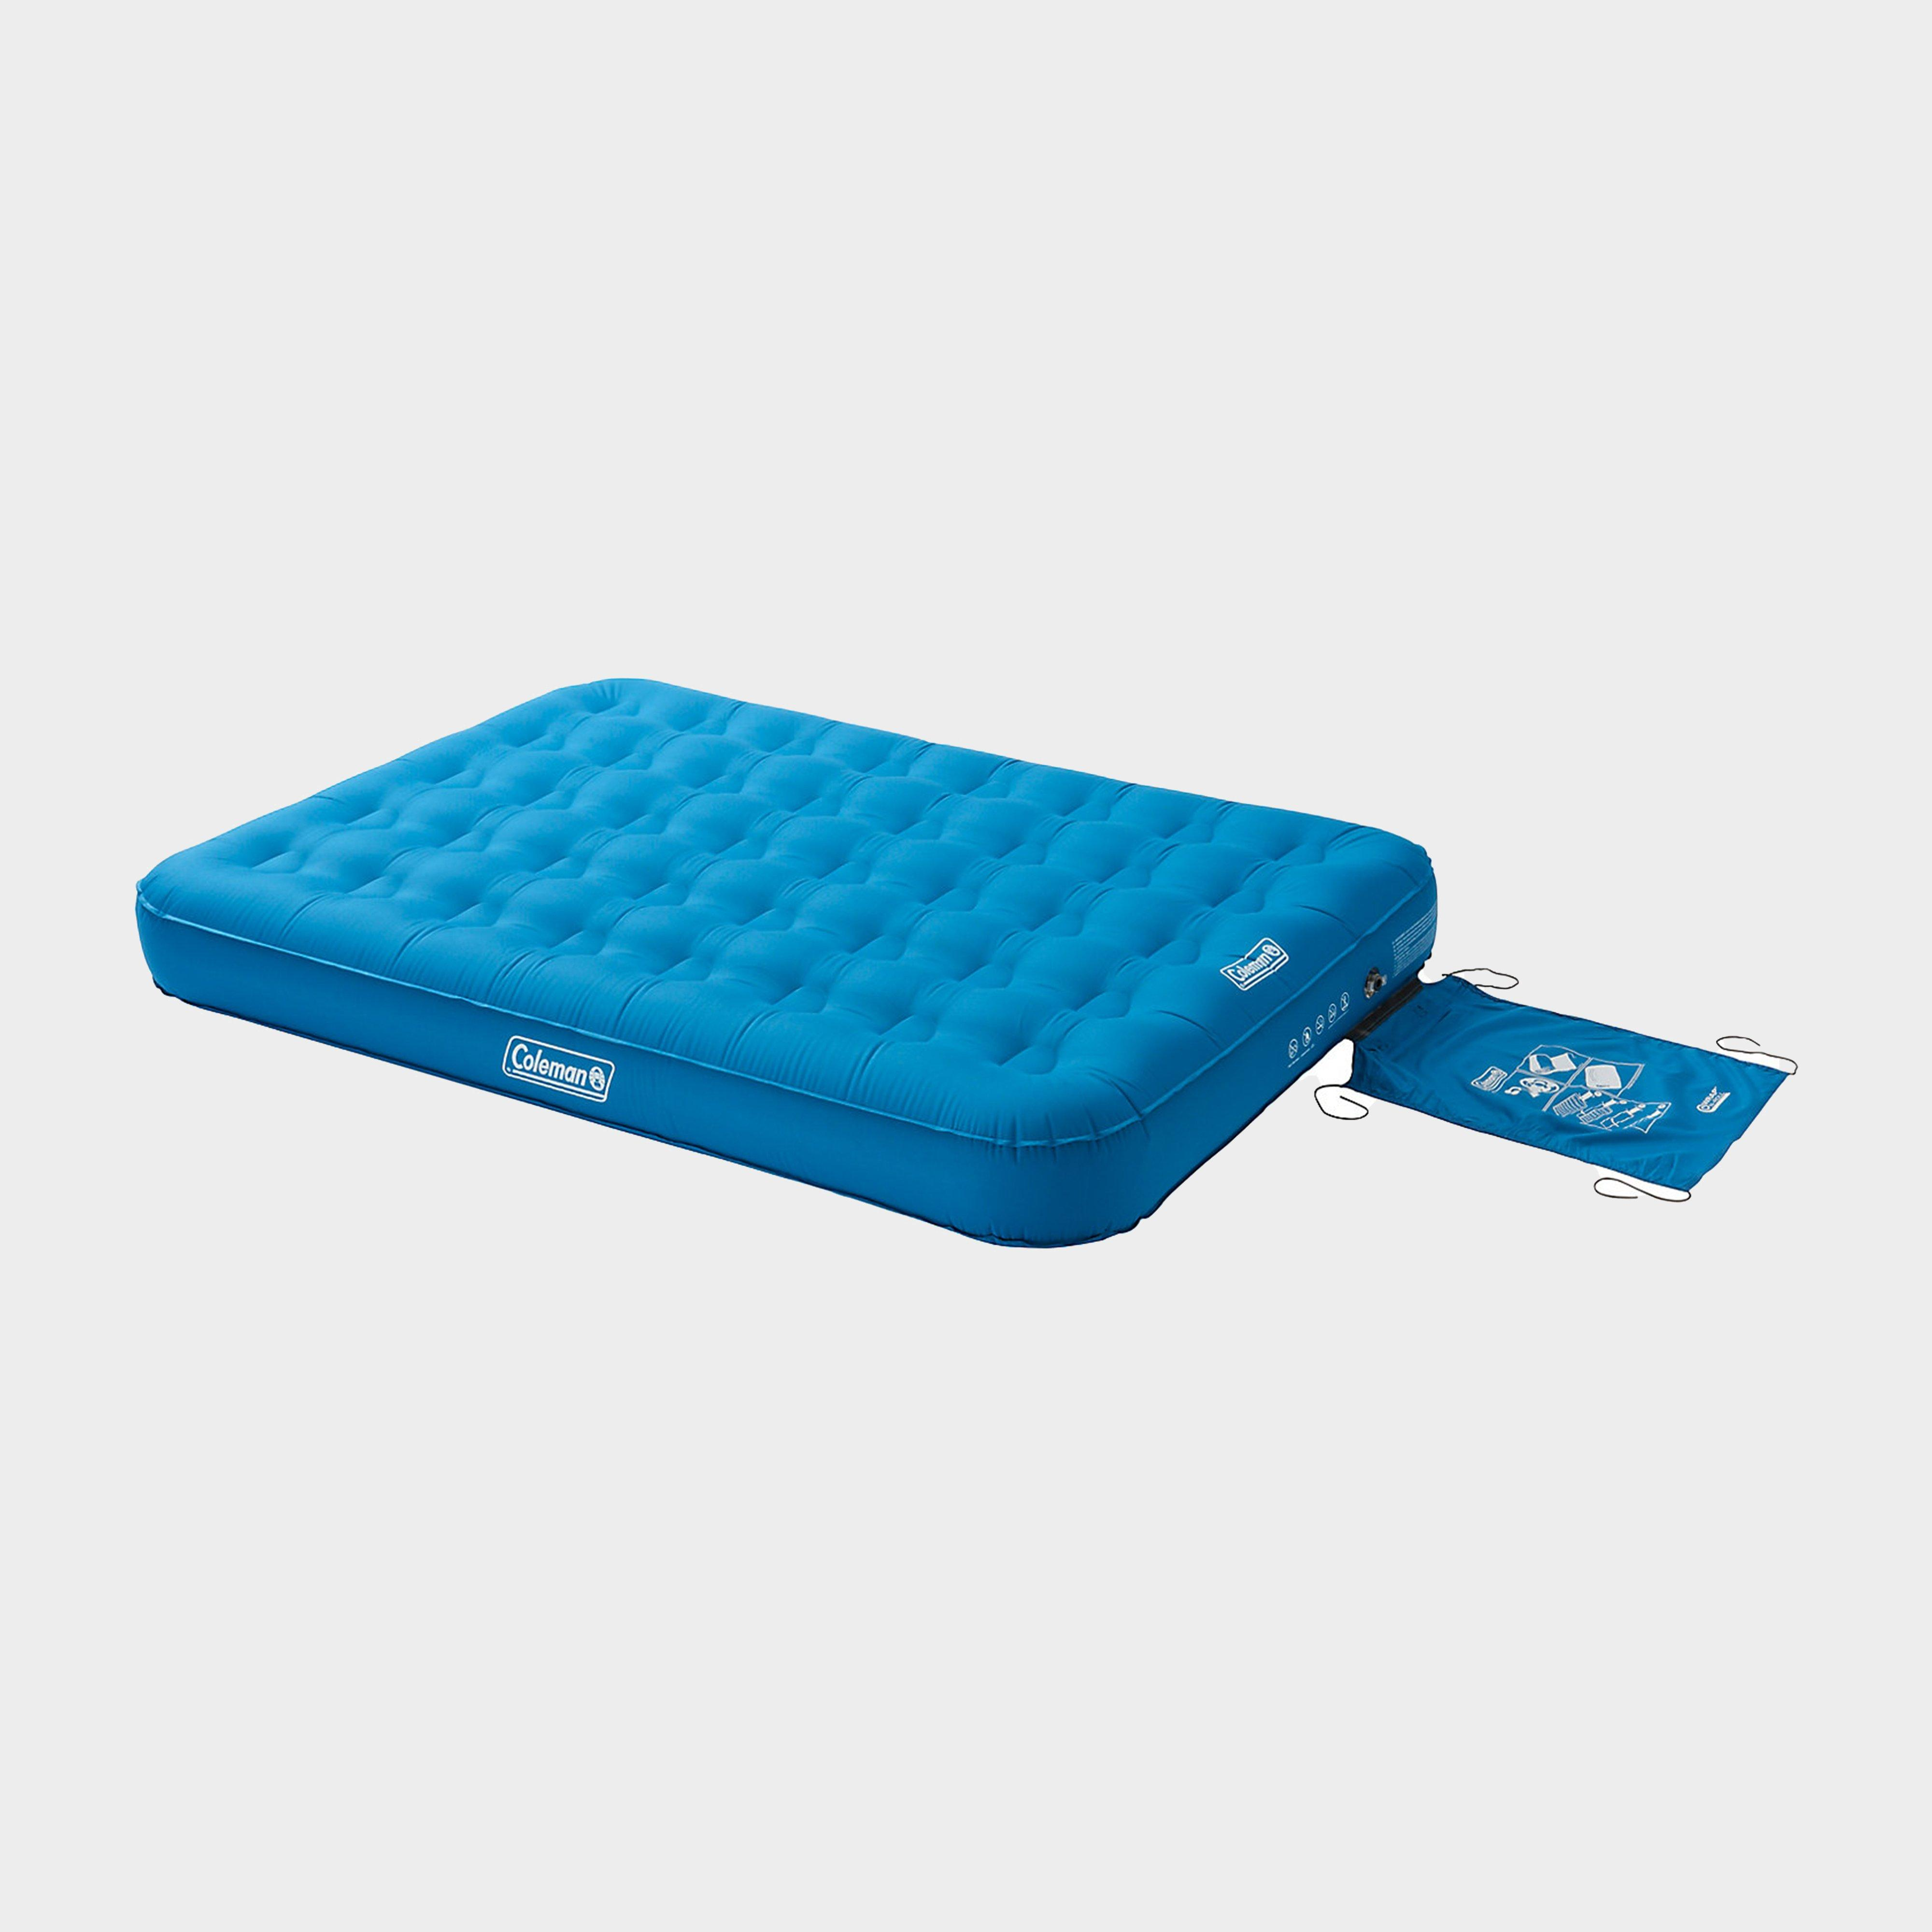 Coleman Extra Durable Airbed - Blue/doub  Blue/doub